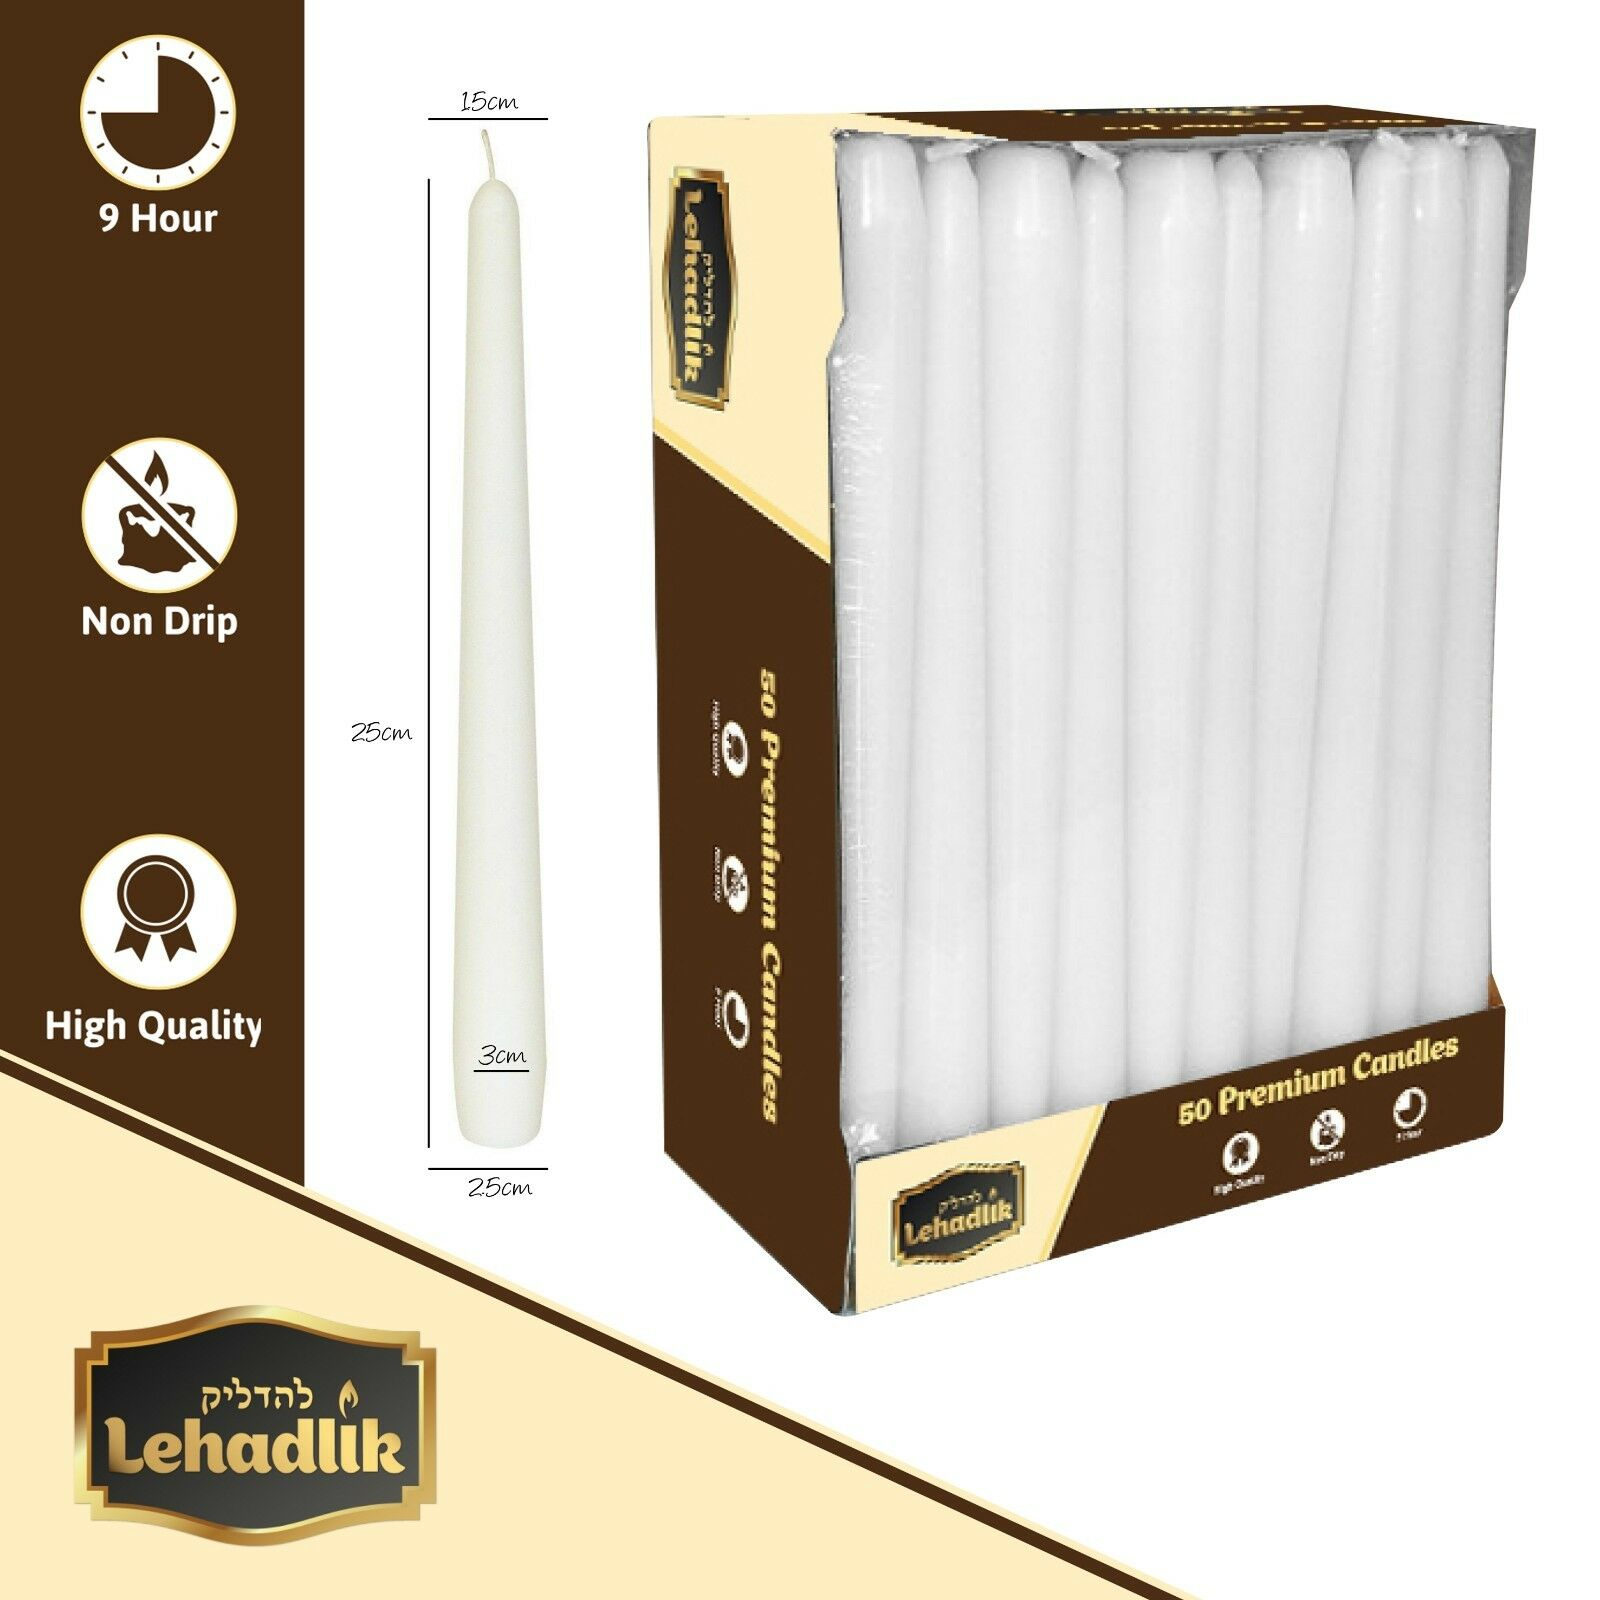 High Quality 50 Unscented Bistro Tapered 25cm White Dinner Food Table Candles 8-9 Hours Burn Time High Quality for Home/Events/Restaurant/Wedding/Party